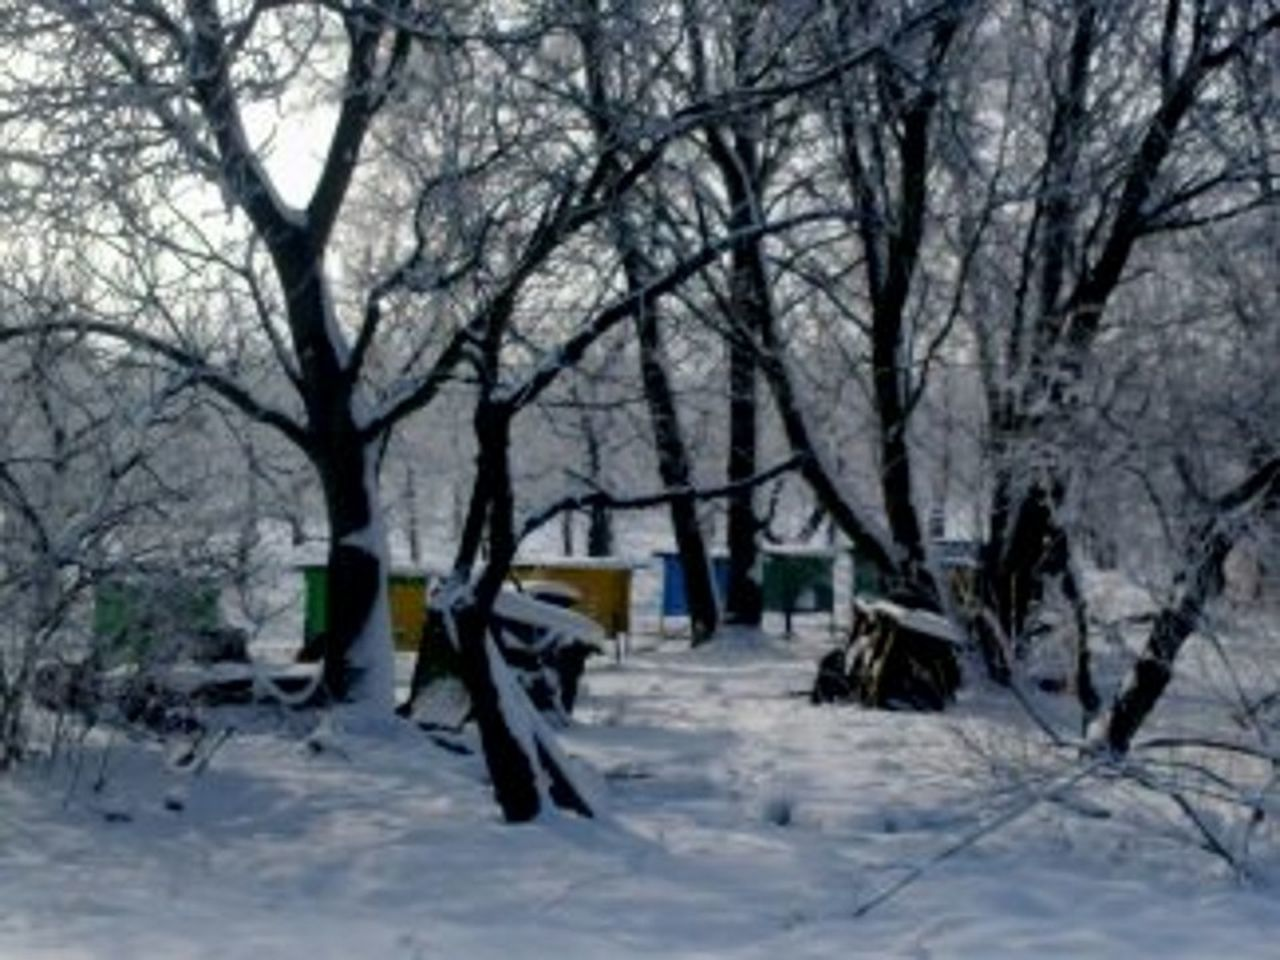 winter, snow, cold temperature, nature, outdoors, bare tree, no people, day, tree, beauty in nature